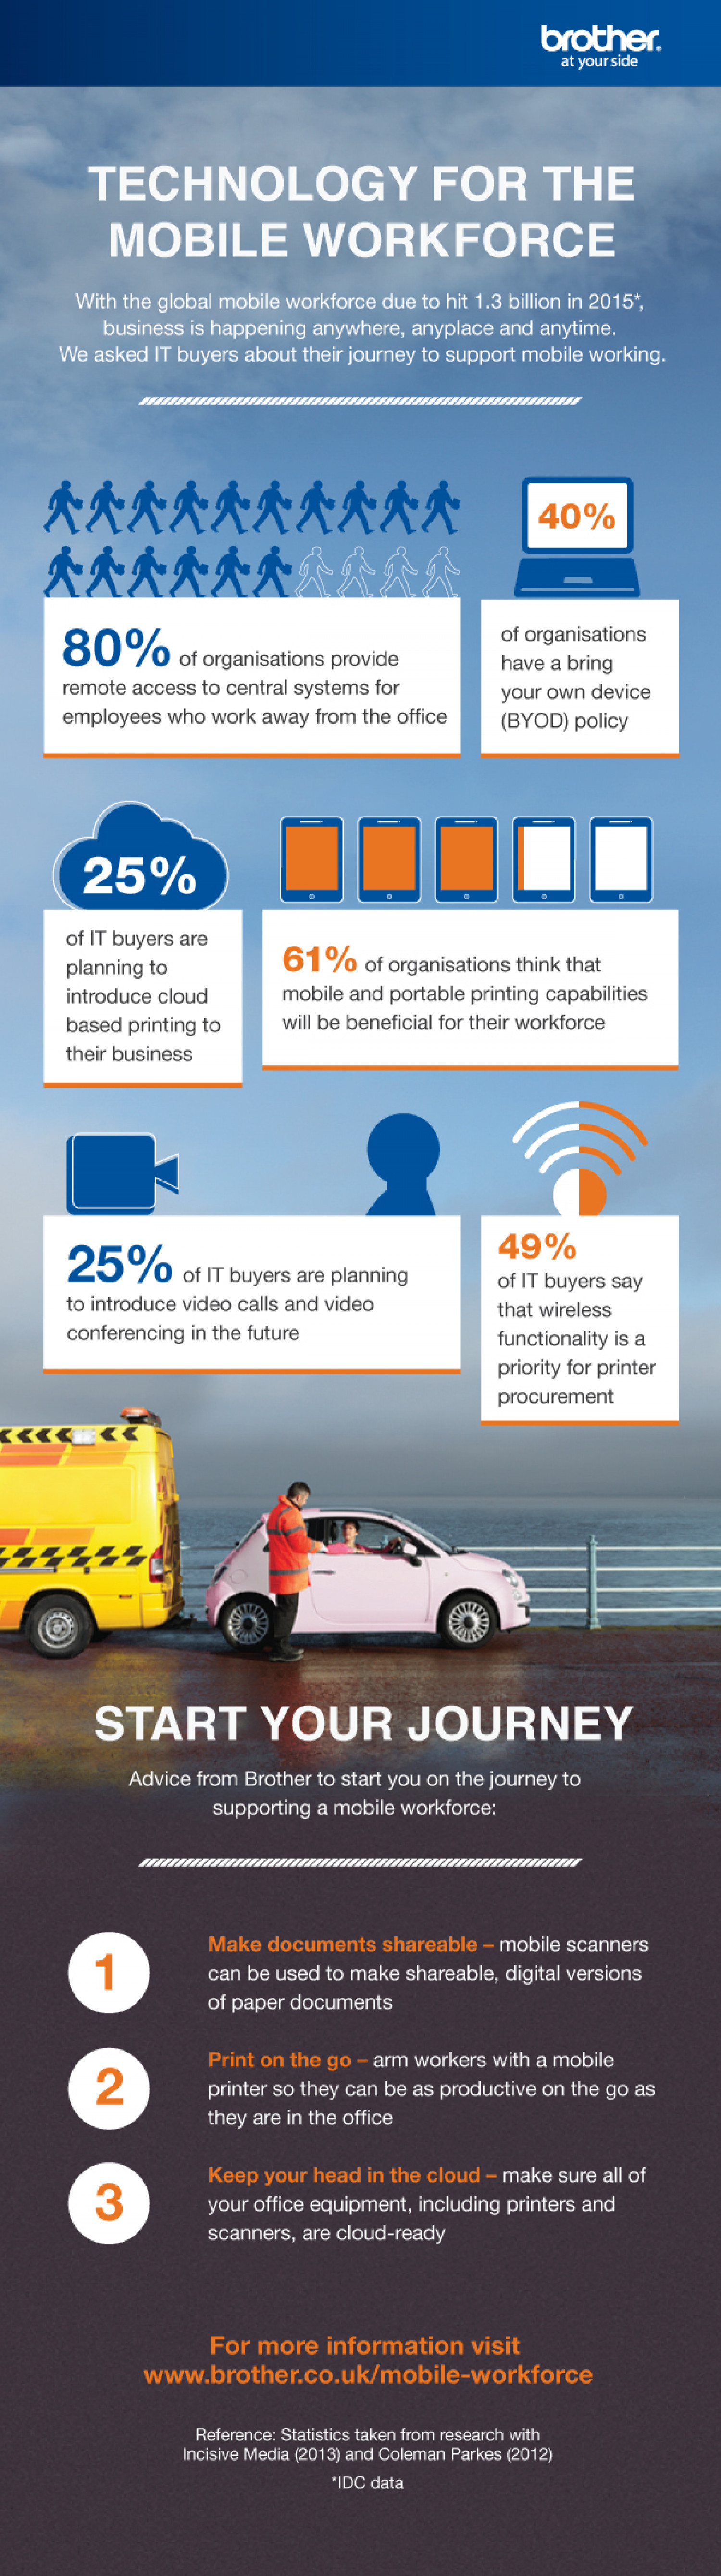 Technology for the Mobile Workforce Infographic